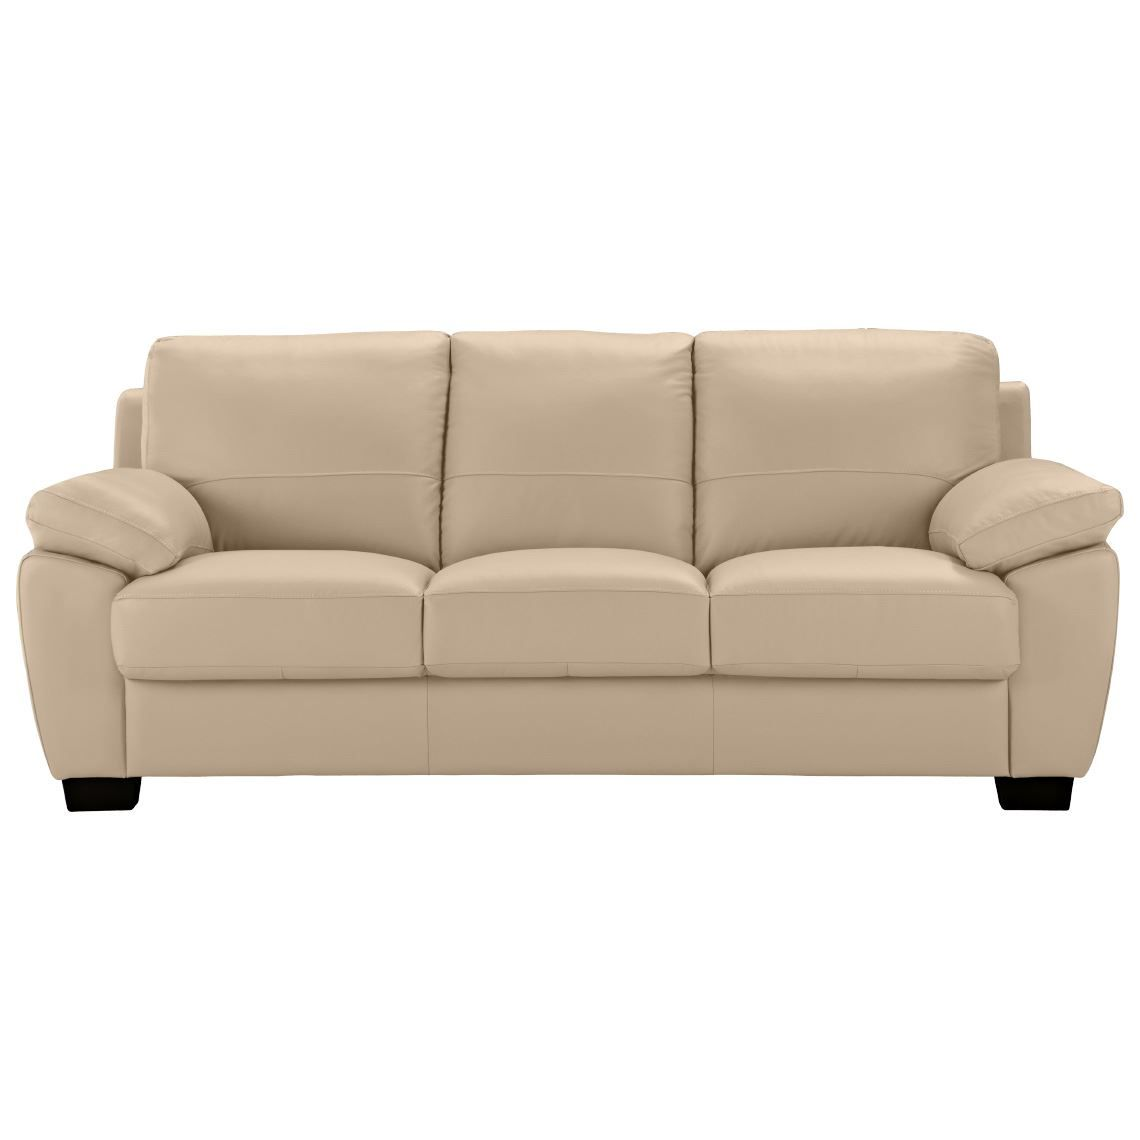 Lucas 3 Seat Leather Sofa Bisque in 2019 | Products | Sofa, Leather ...